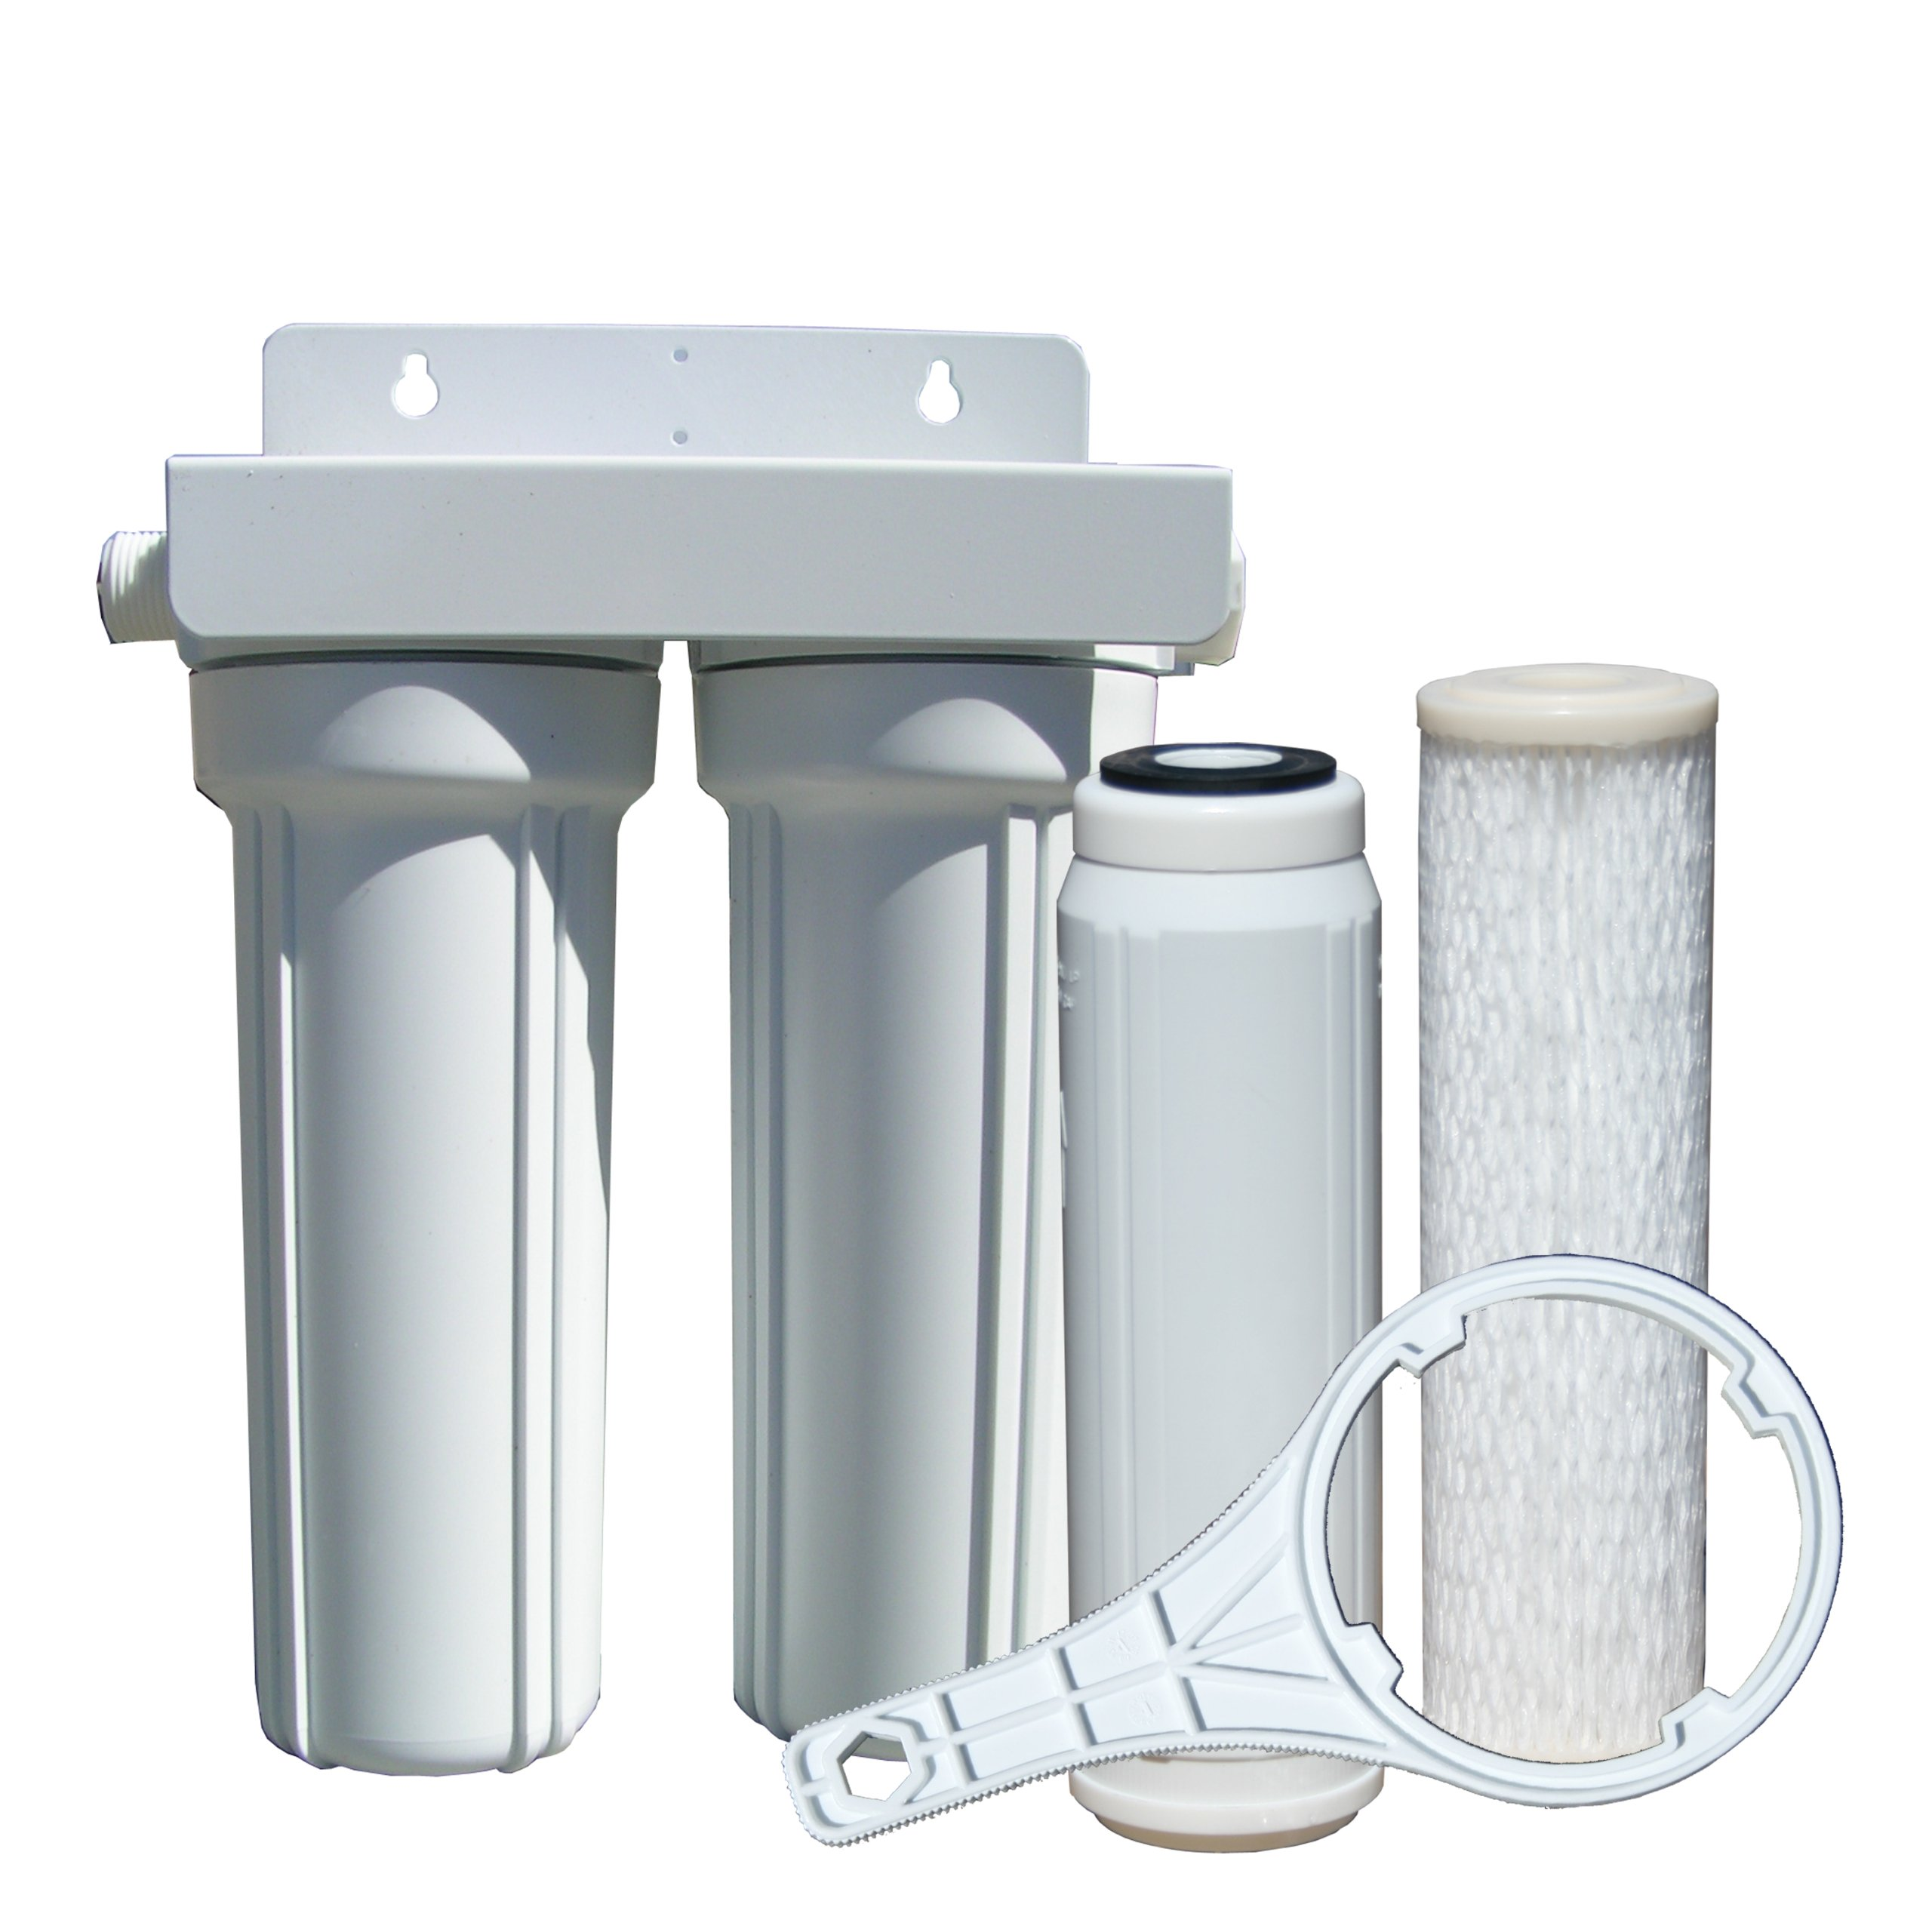 Watts 520022 RV/Boat Duo Exterior Water Filter with Garden Hose Fittings